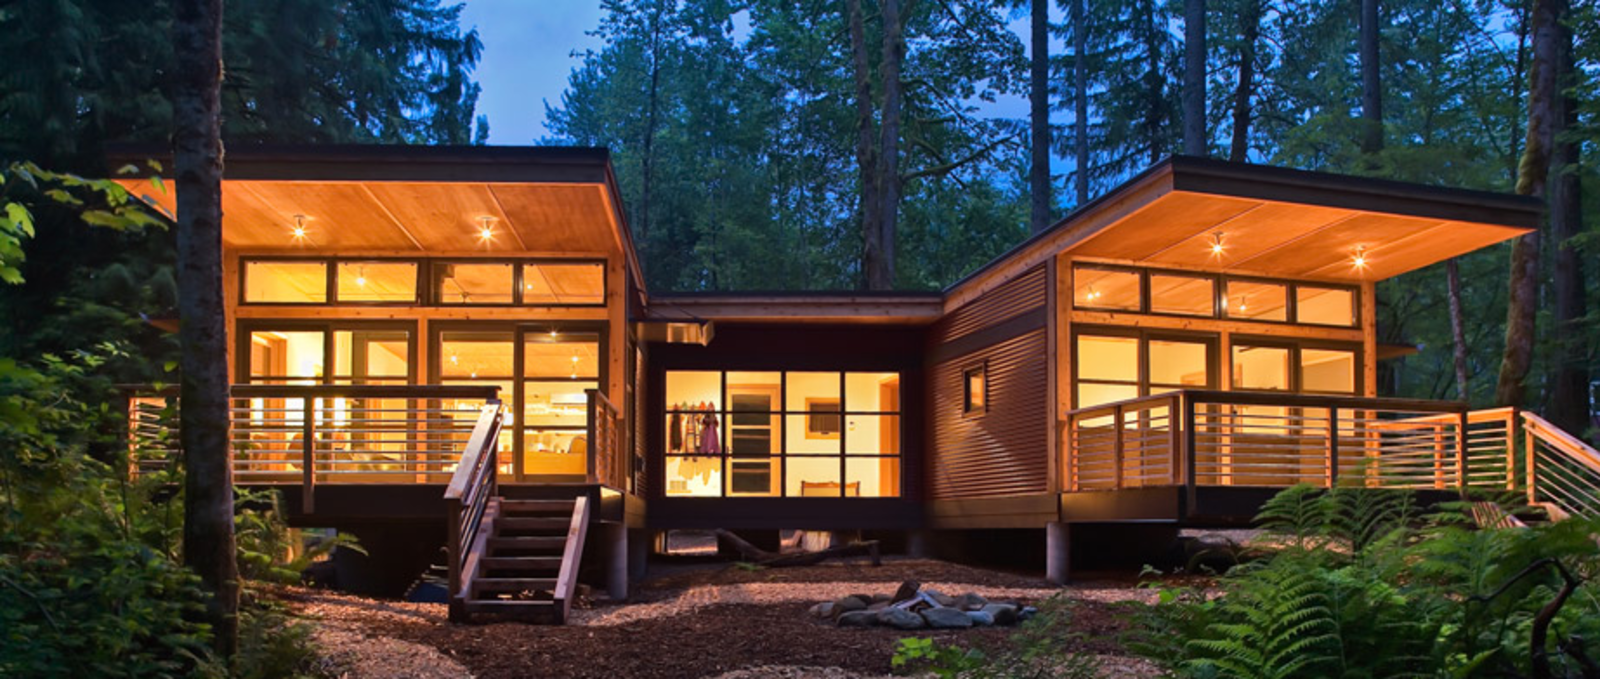 8 Prefab Firms In Washington Aiming To Solve The Area's